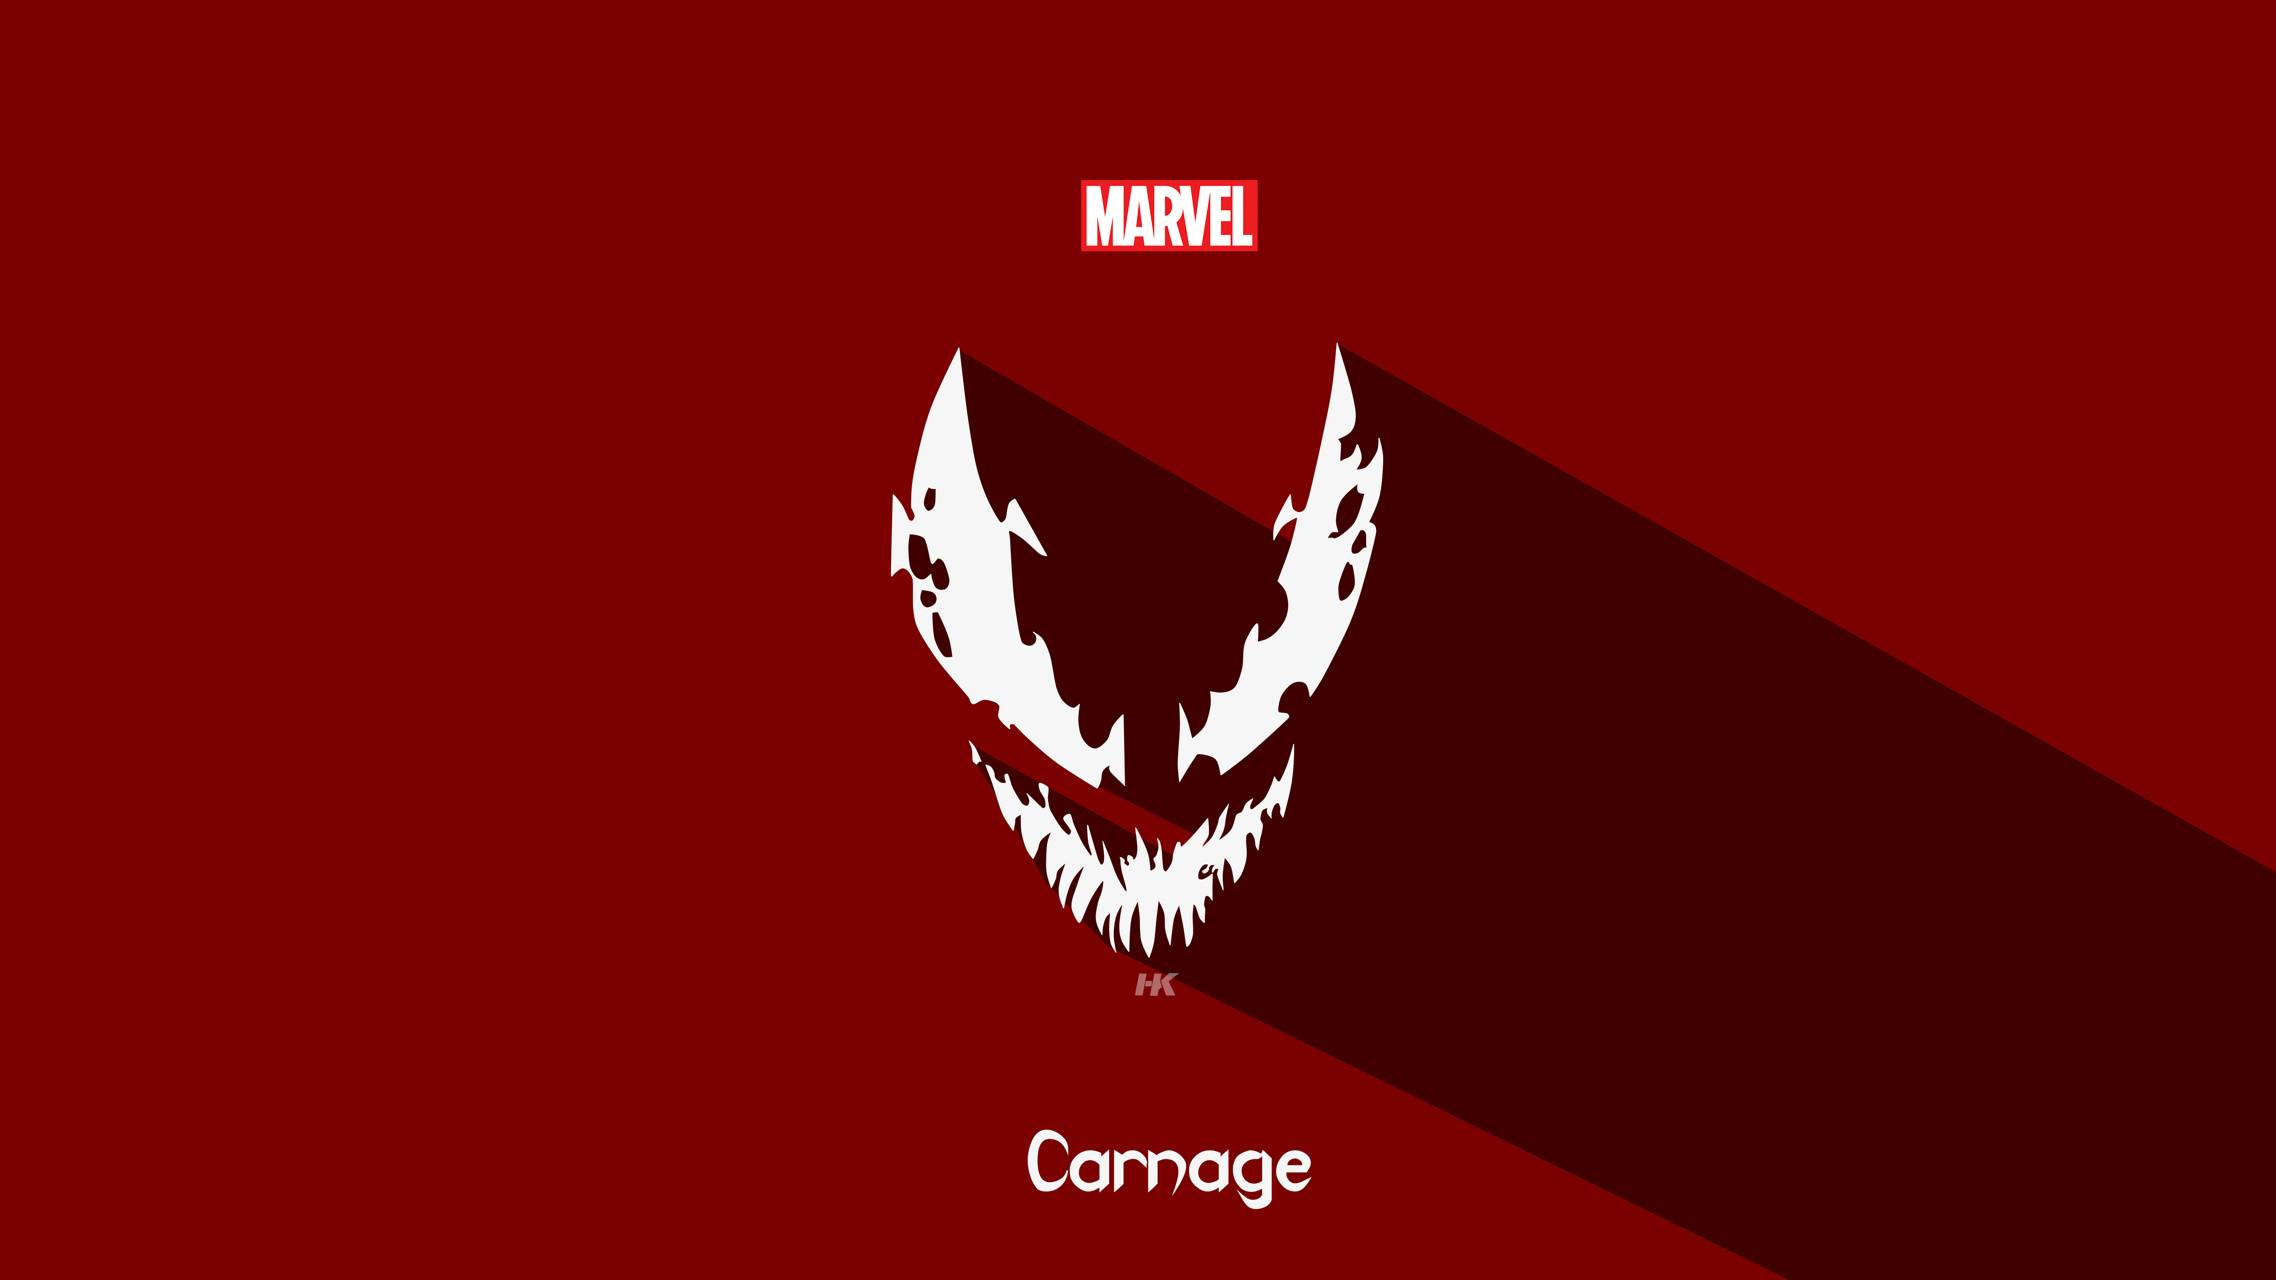 Marvel Carnage wallpaper by HKartworks.